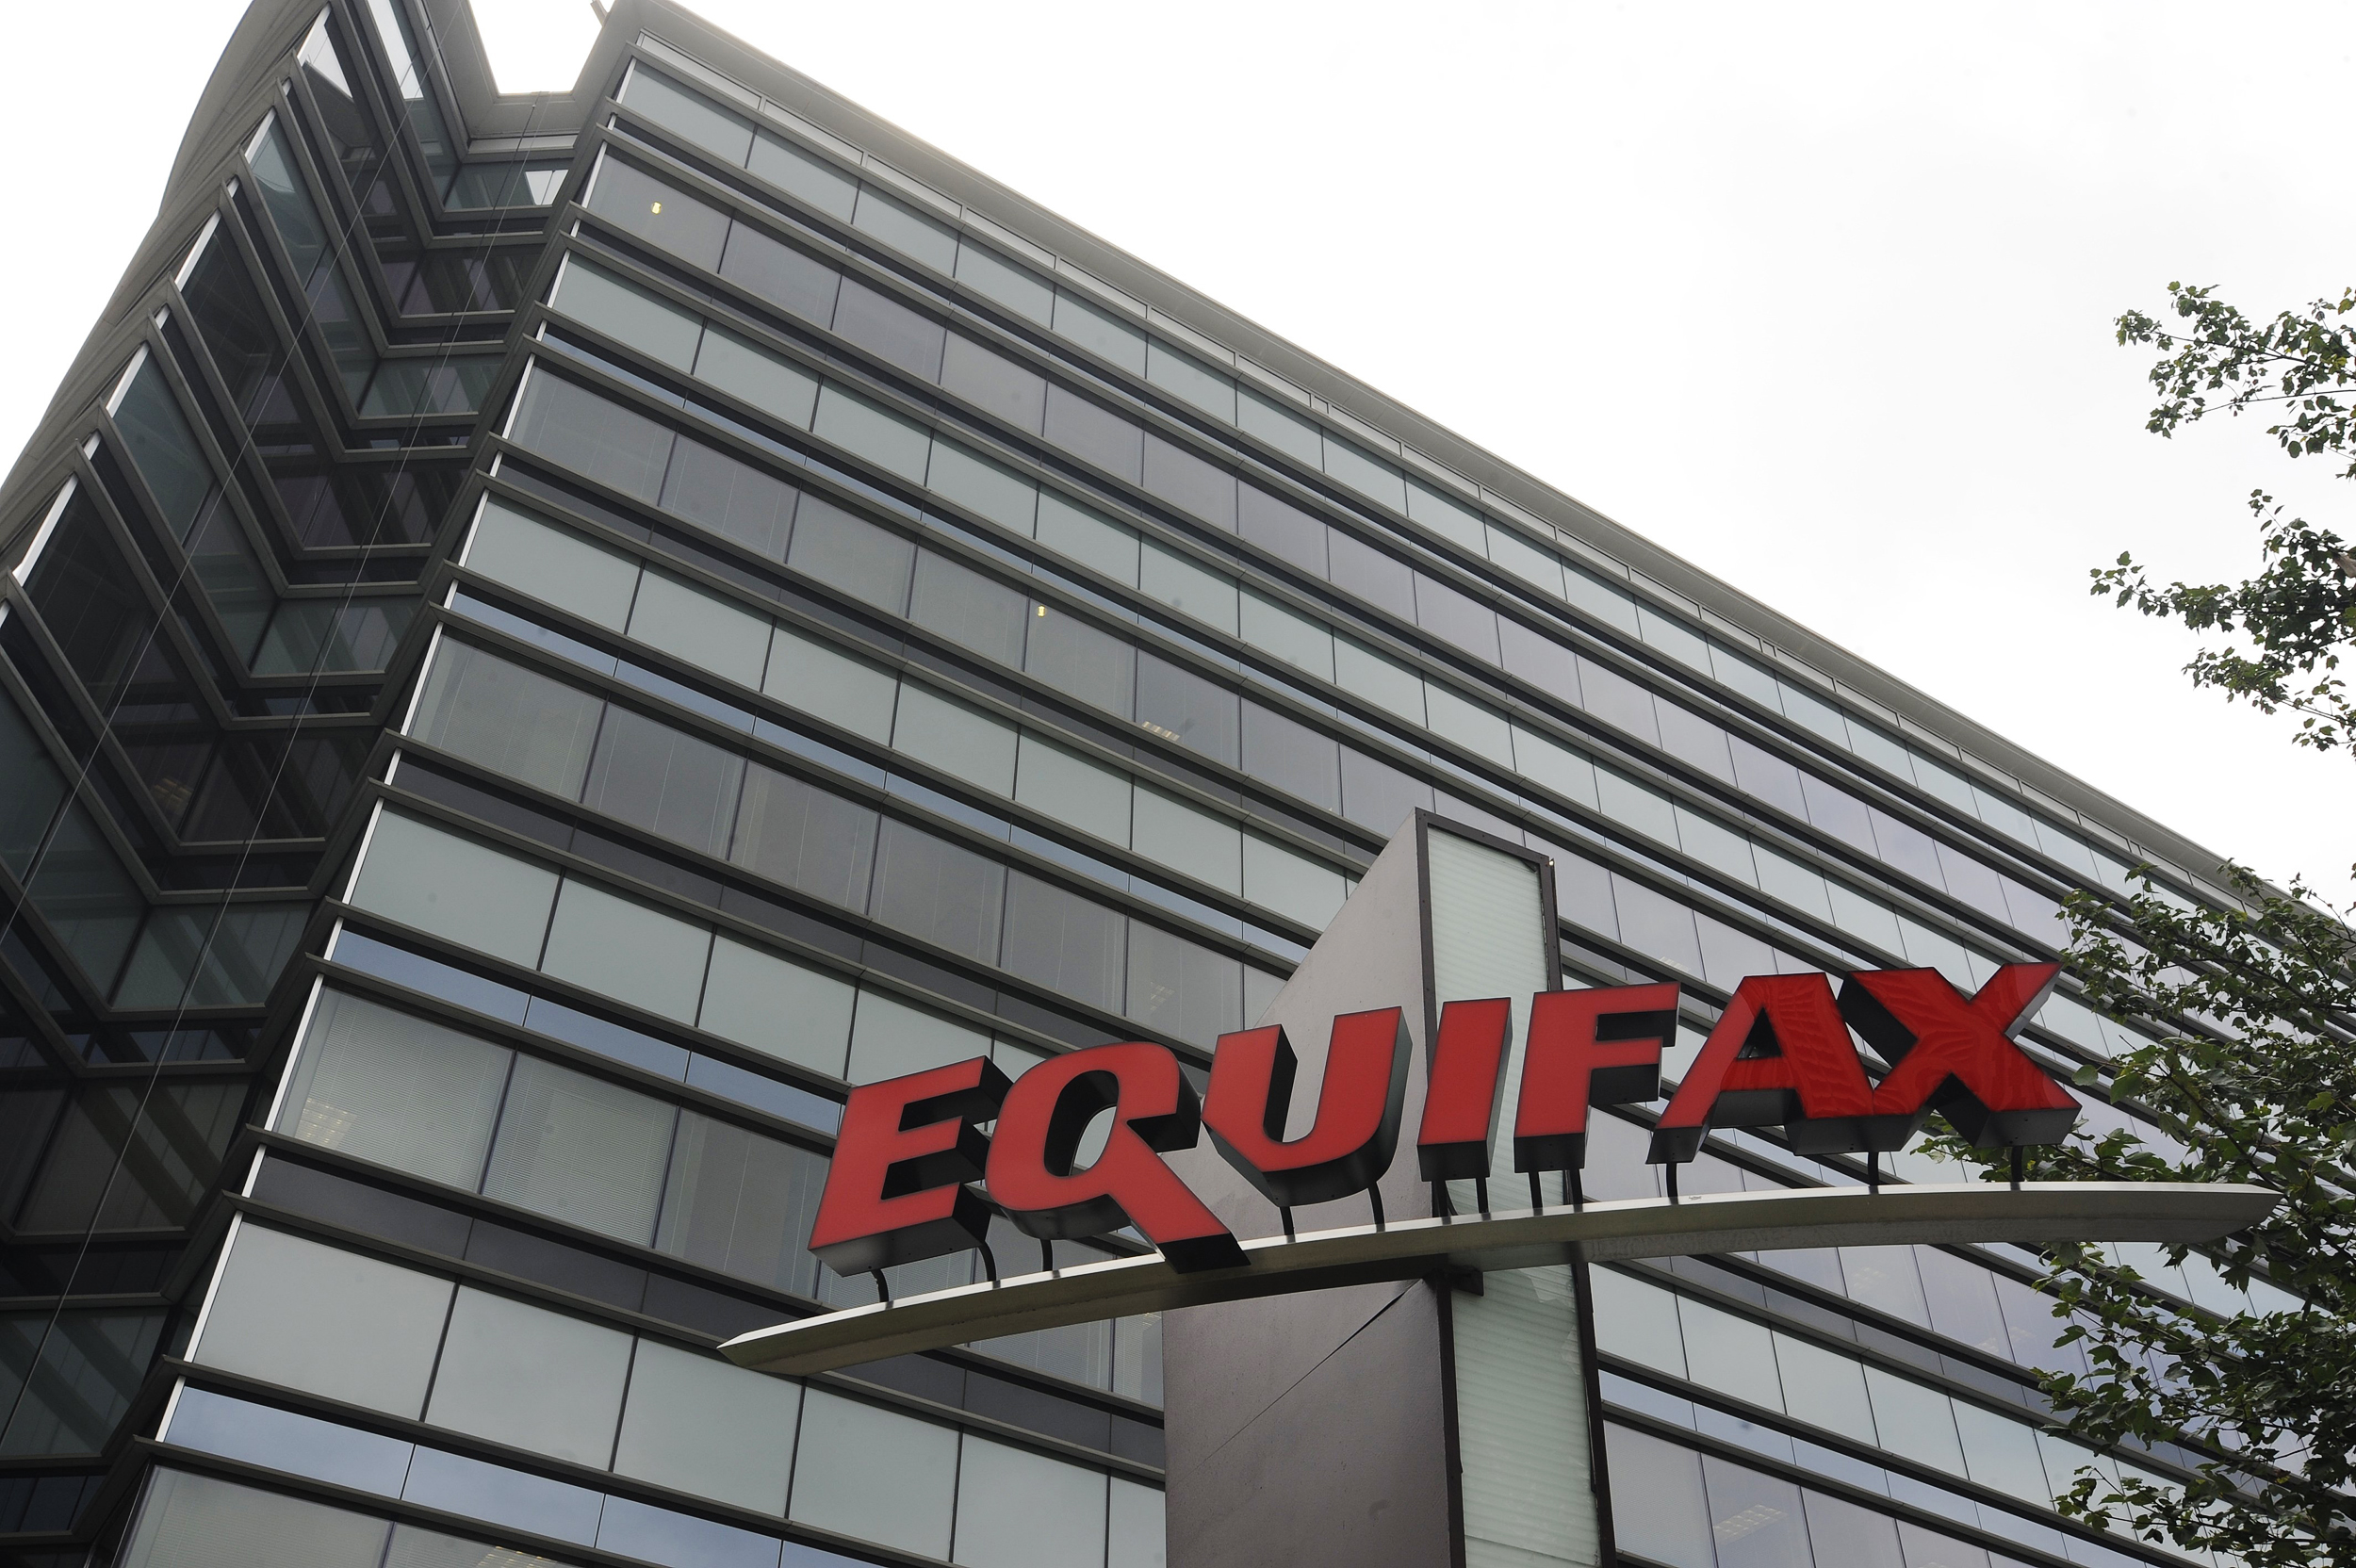 Here's-What-You-Can-Do-About-That-Equifax-Breach